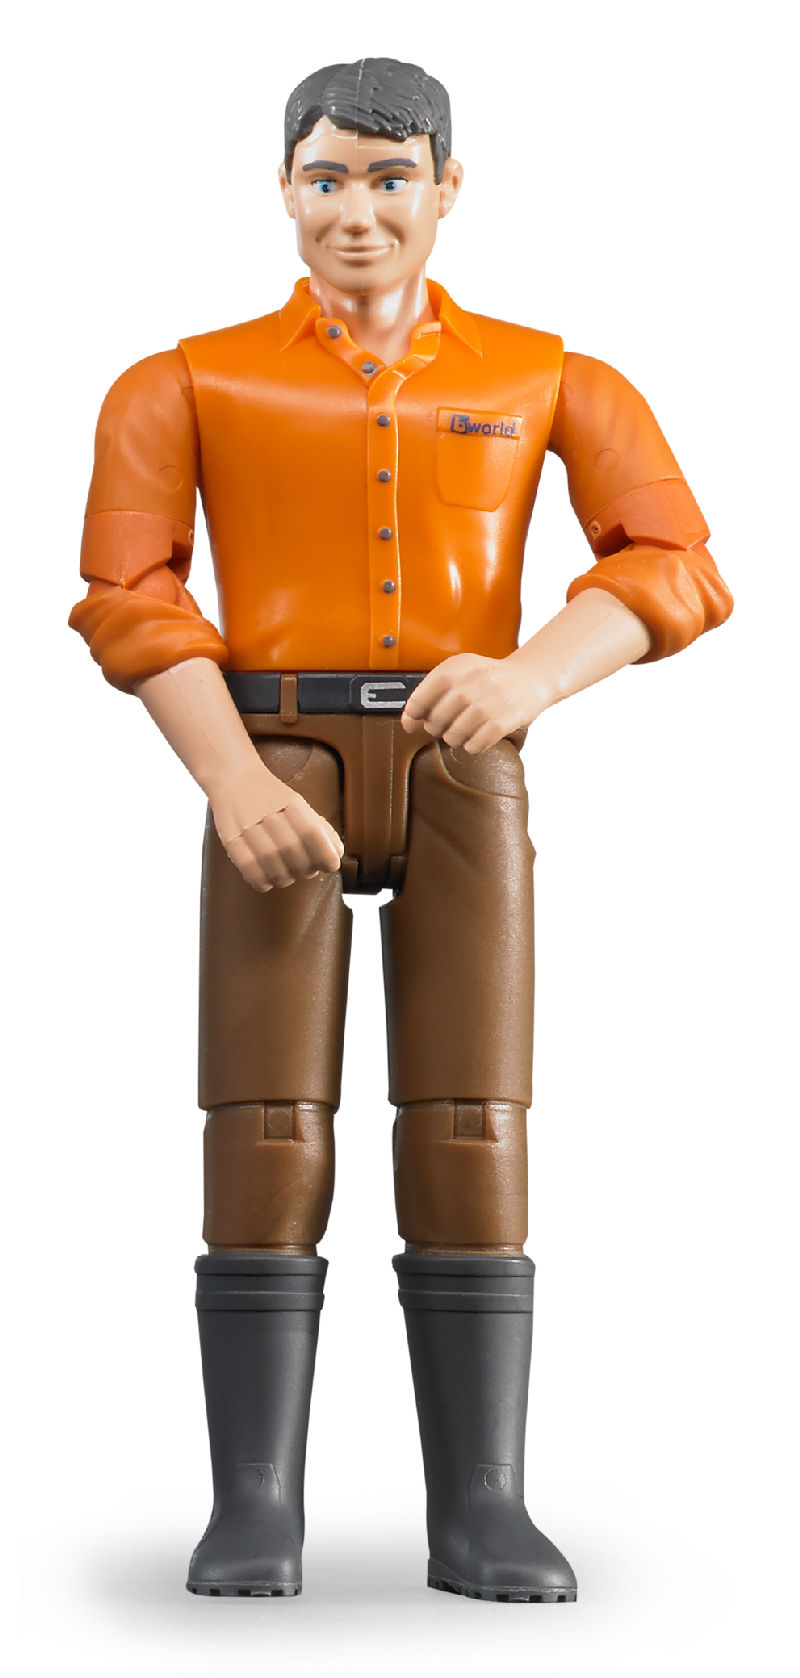 60007 - Bruder Toys Male Driver_Construction Worker